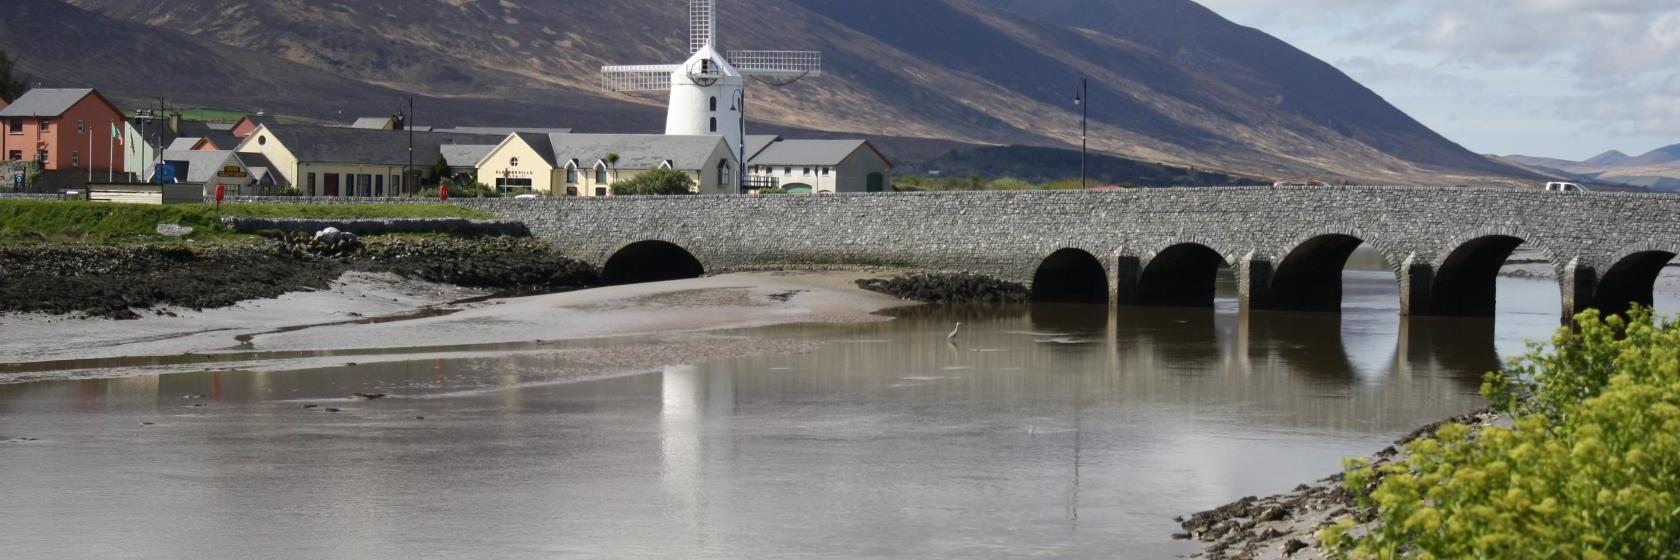 How to get to the Dingle Peninsula Ireland - Transport